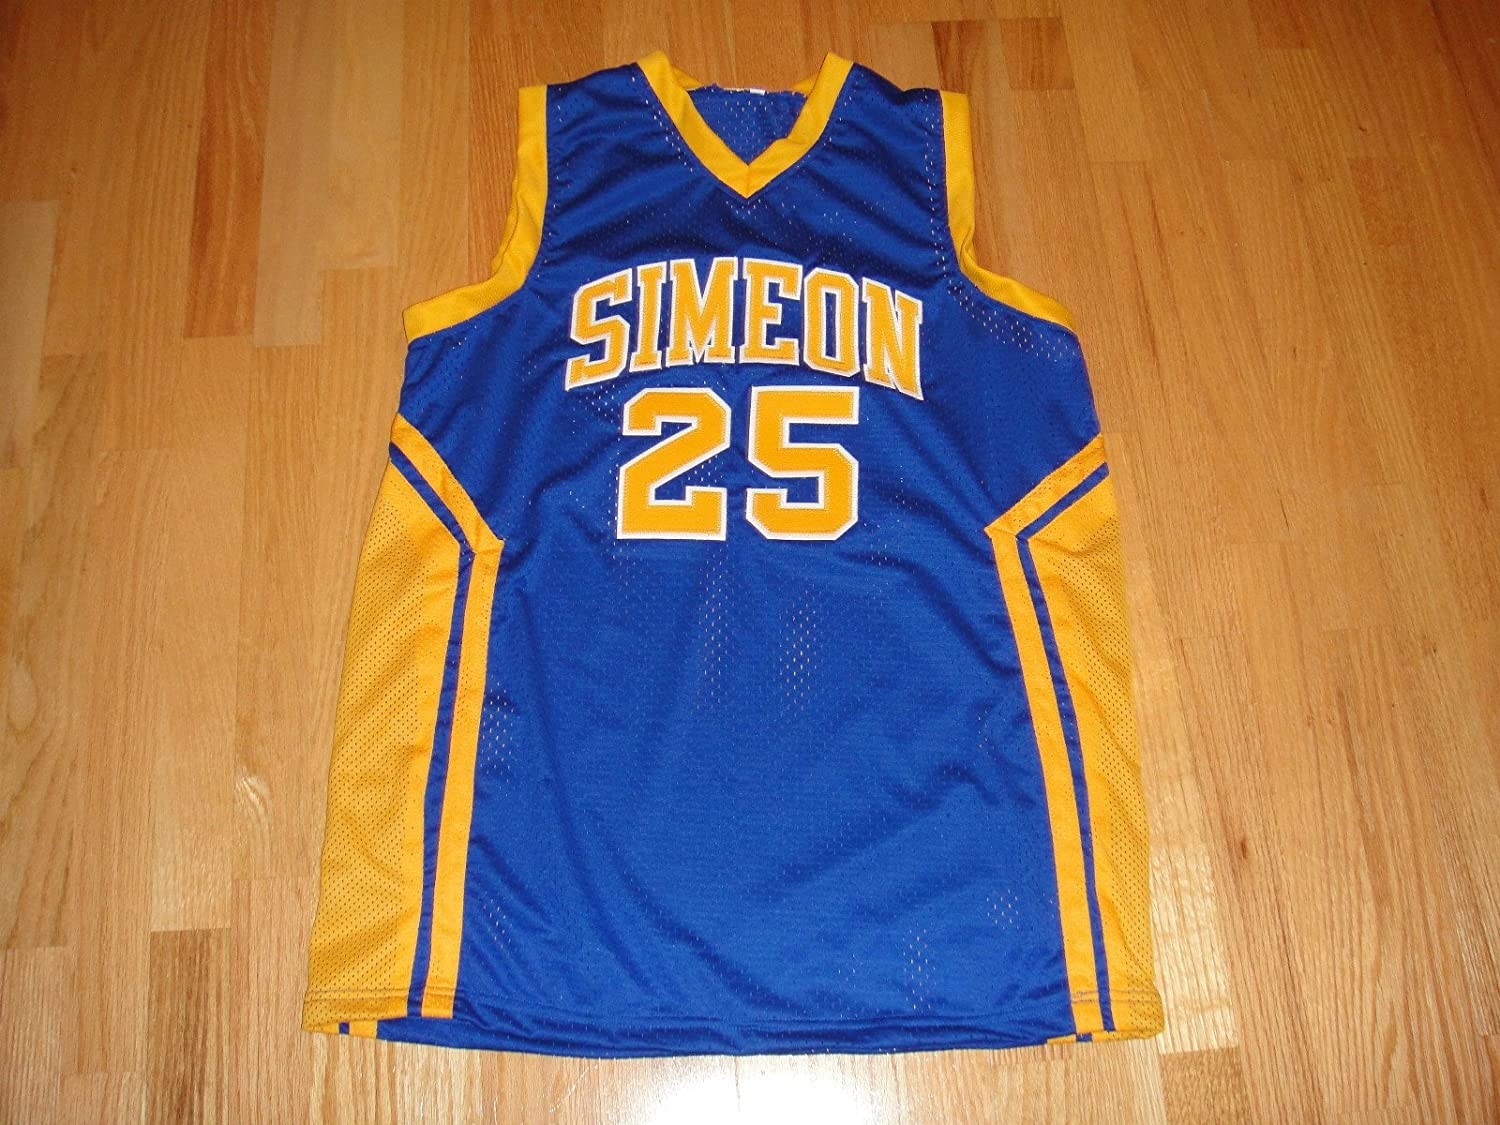 watch d860e 865ff DERRICK ROSE #25 PSA/DNA SIGNED SIMEON HIGH SCHOOL JERSEY ...